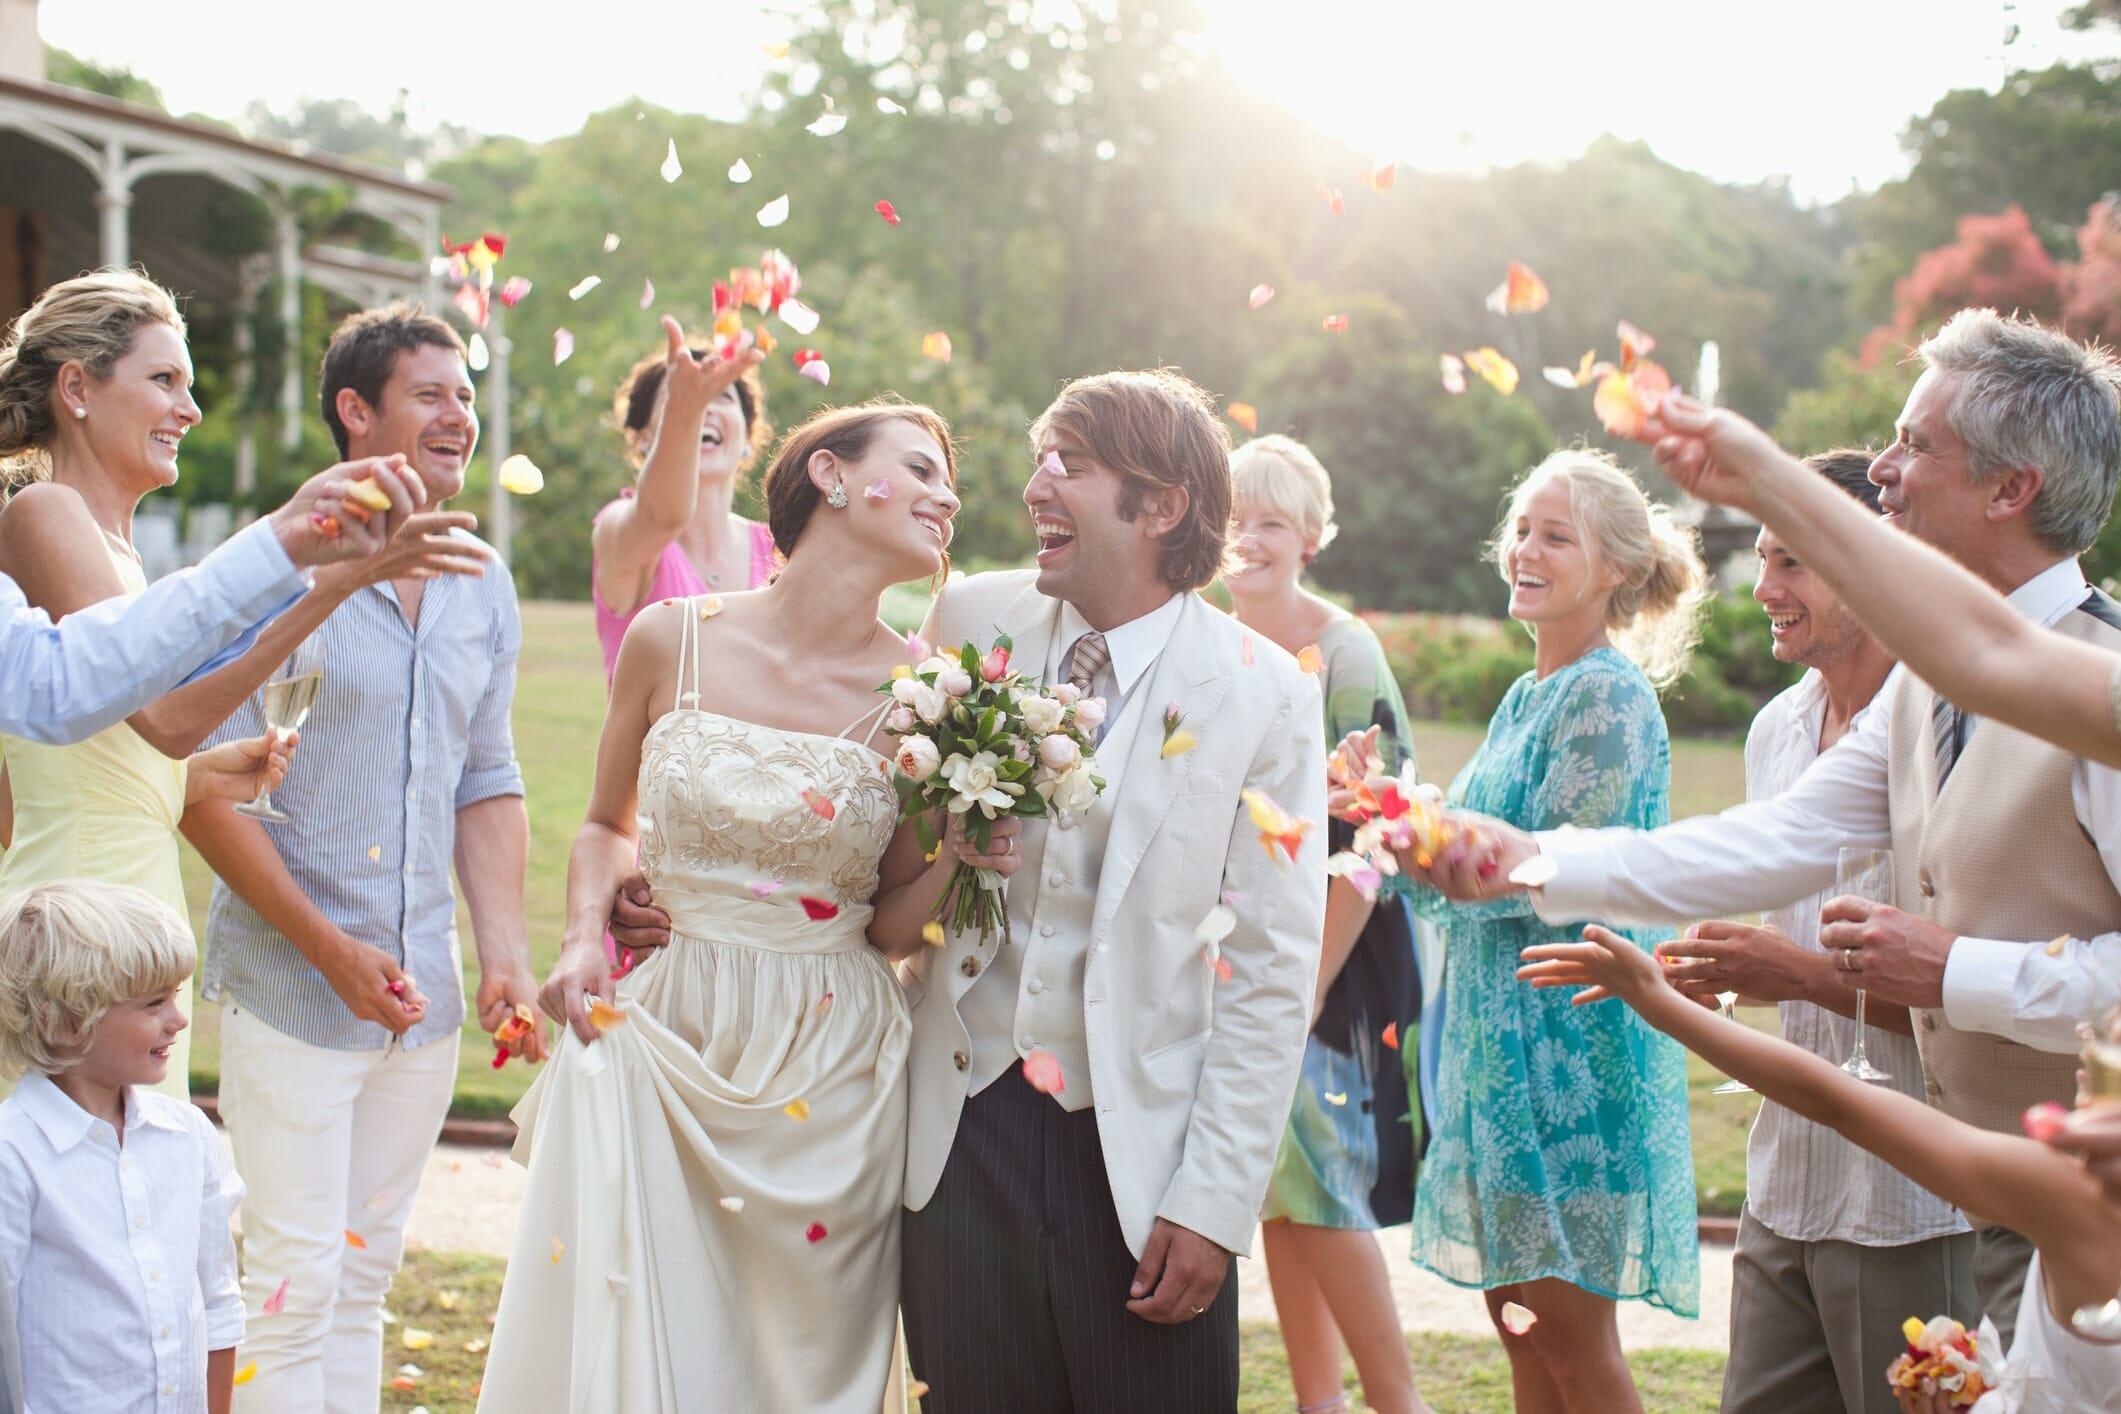 How To Plan a Wedding on a Budget ($10K or Less)